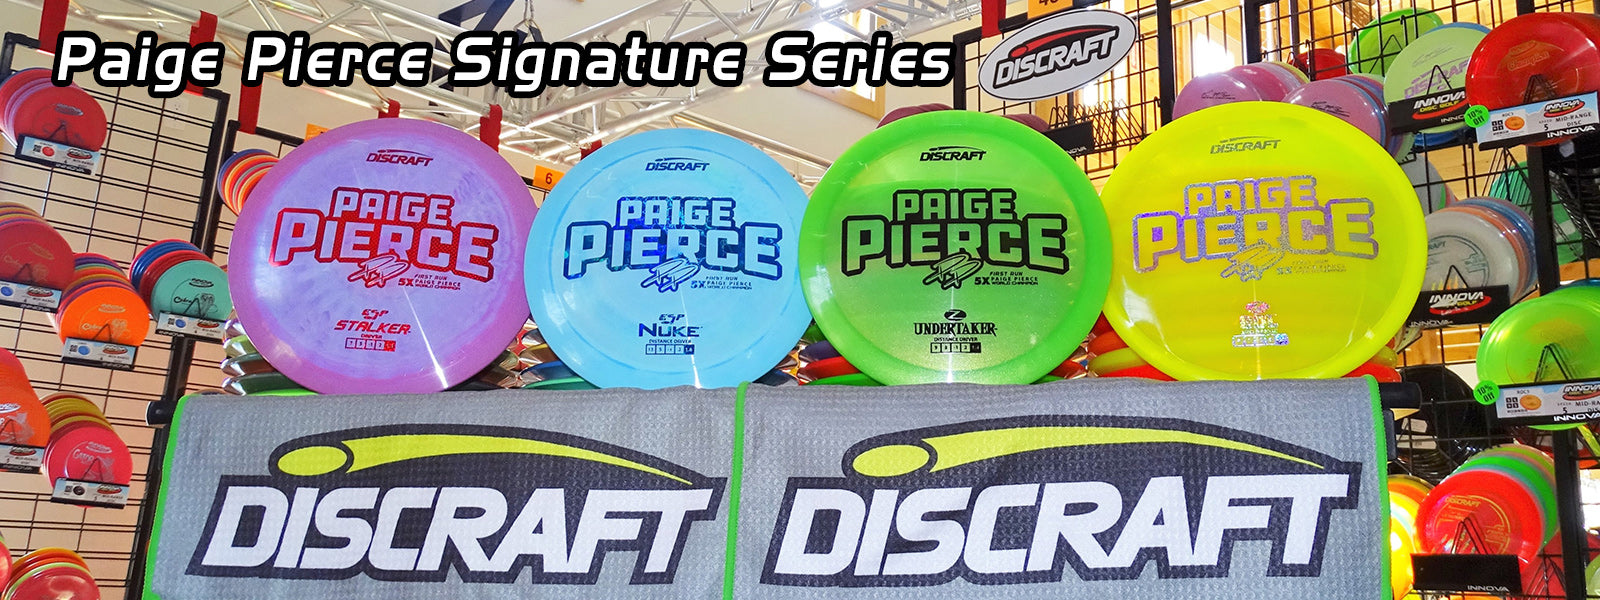 Discraft paige pierce discs lined up inside sabattus disc golf pro shop